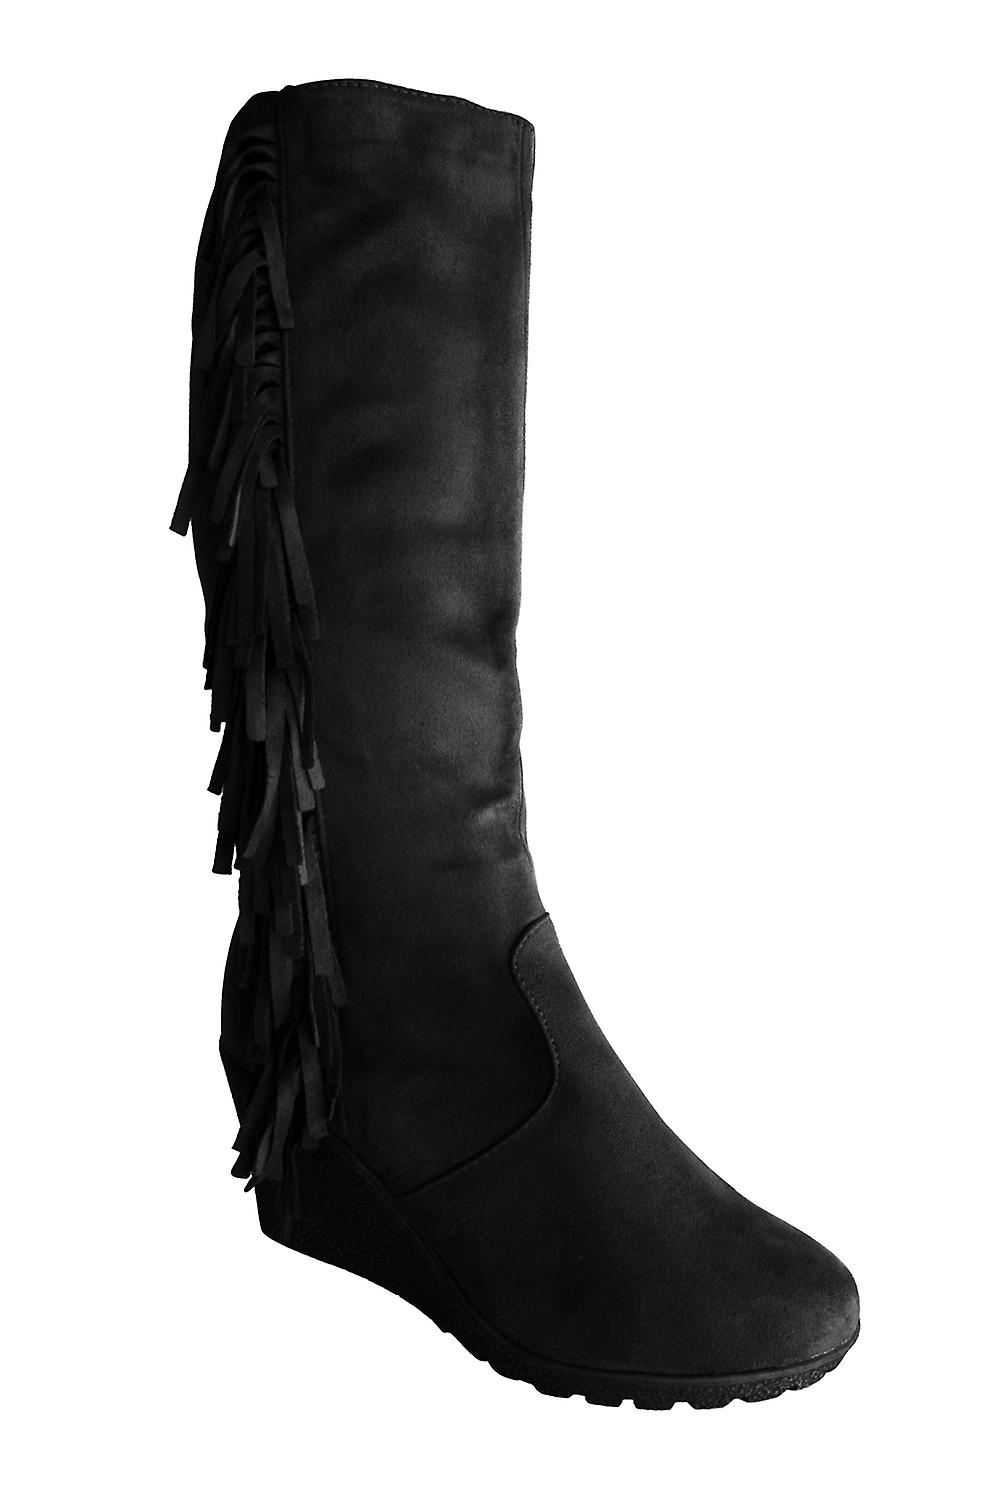 Waooh - Fashion - Wedge Boots